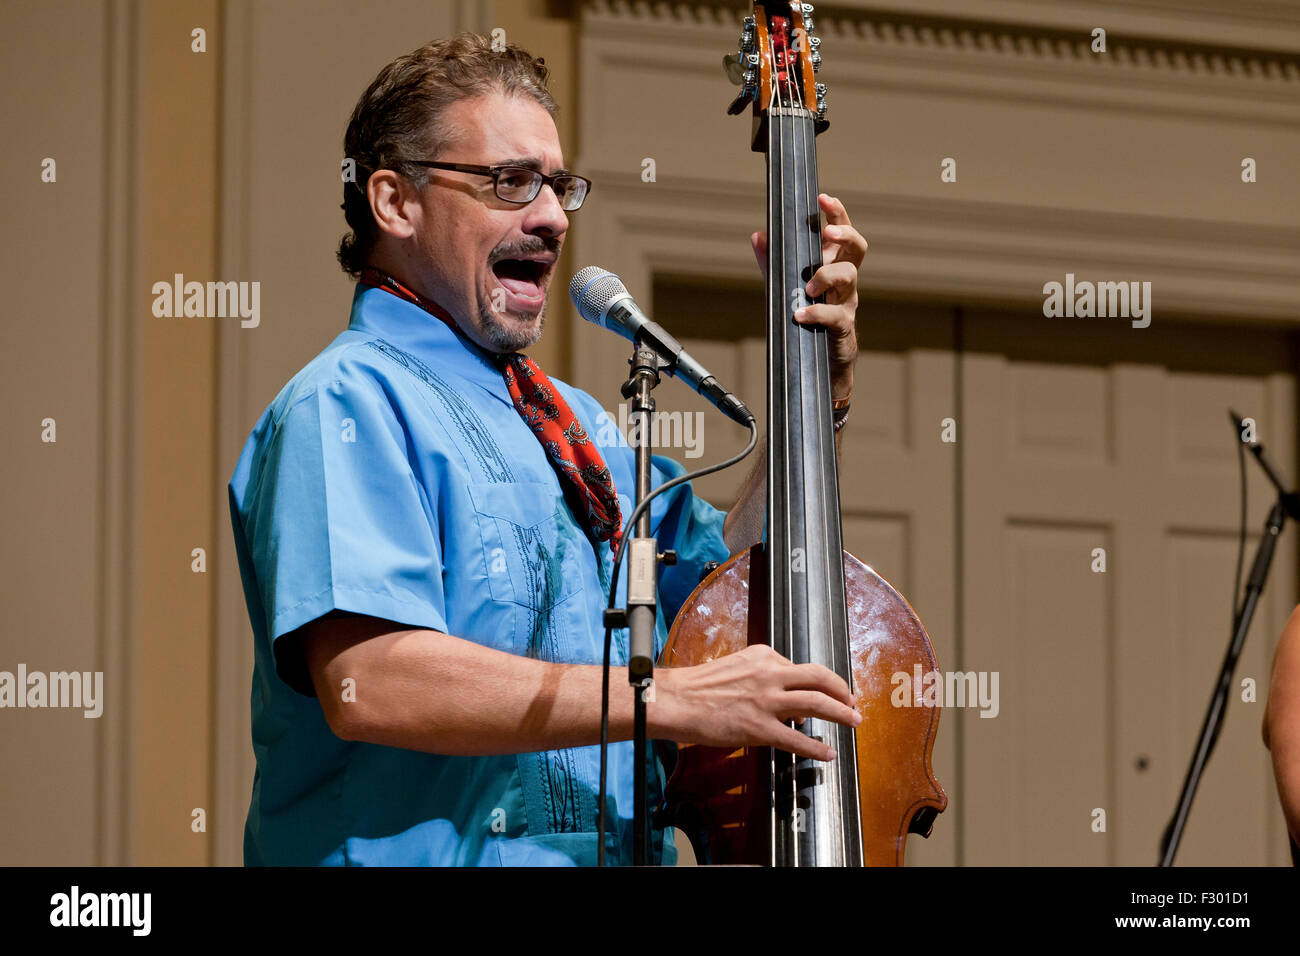 Man singing and playing electric upright Bass instrument on stage - USA Stock Photo